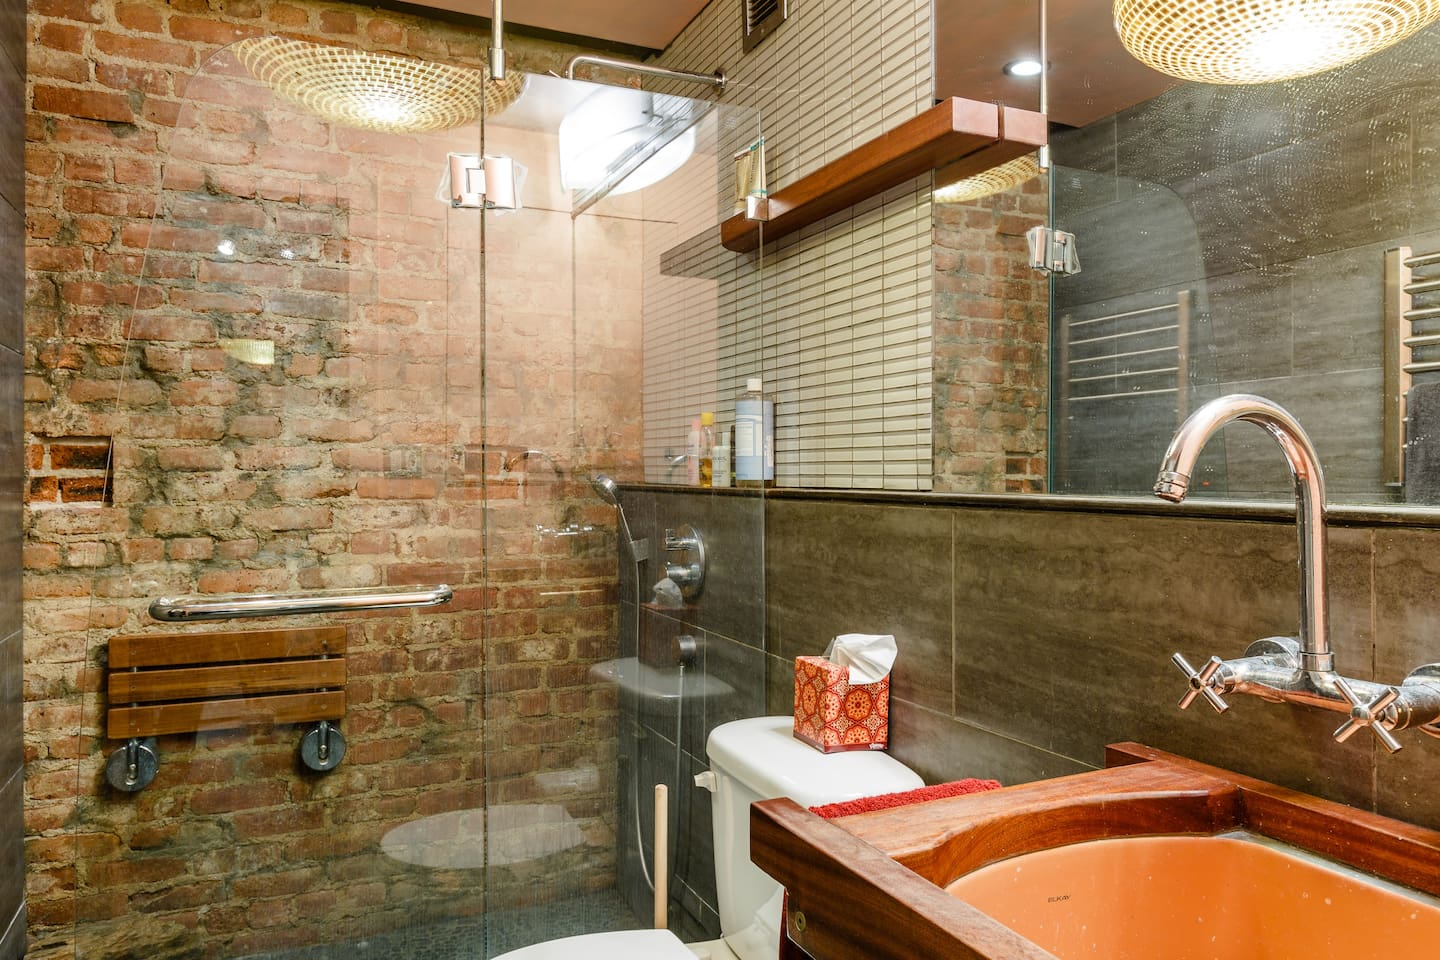 Welcome to your relaxation station. Or maybe it's just a nice bathroom.. Either way, check it out!